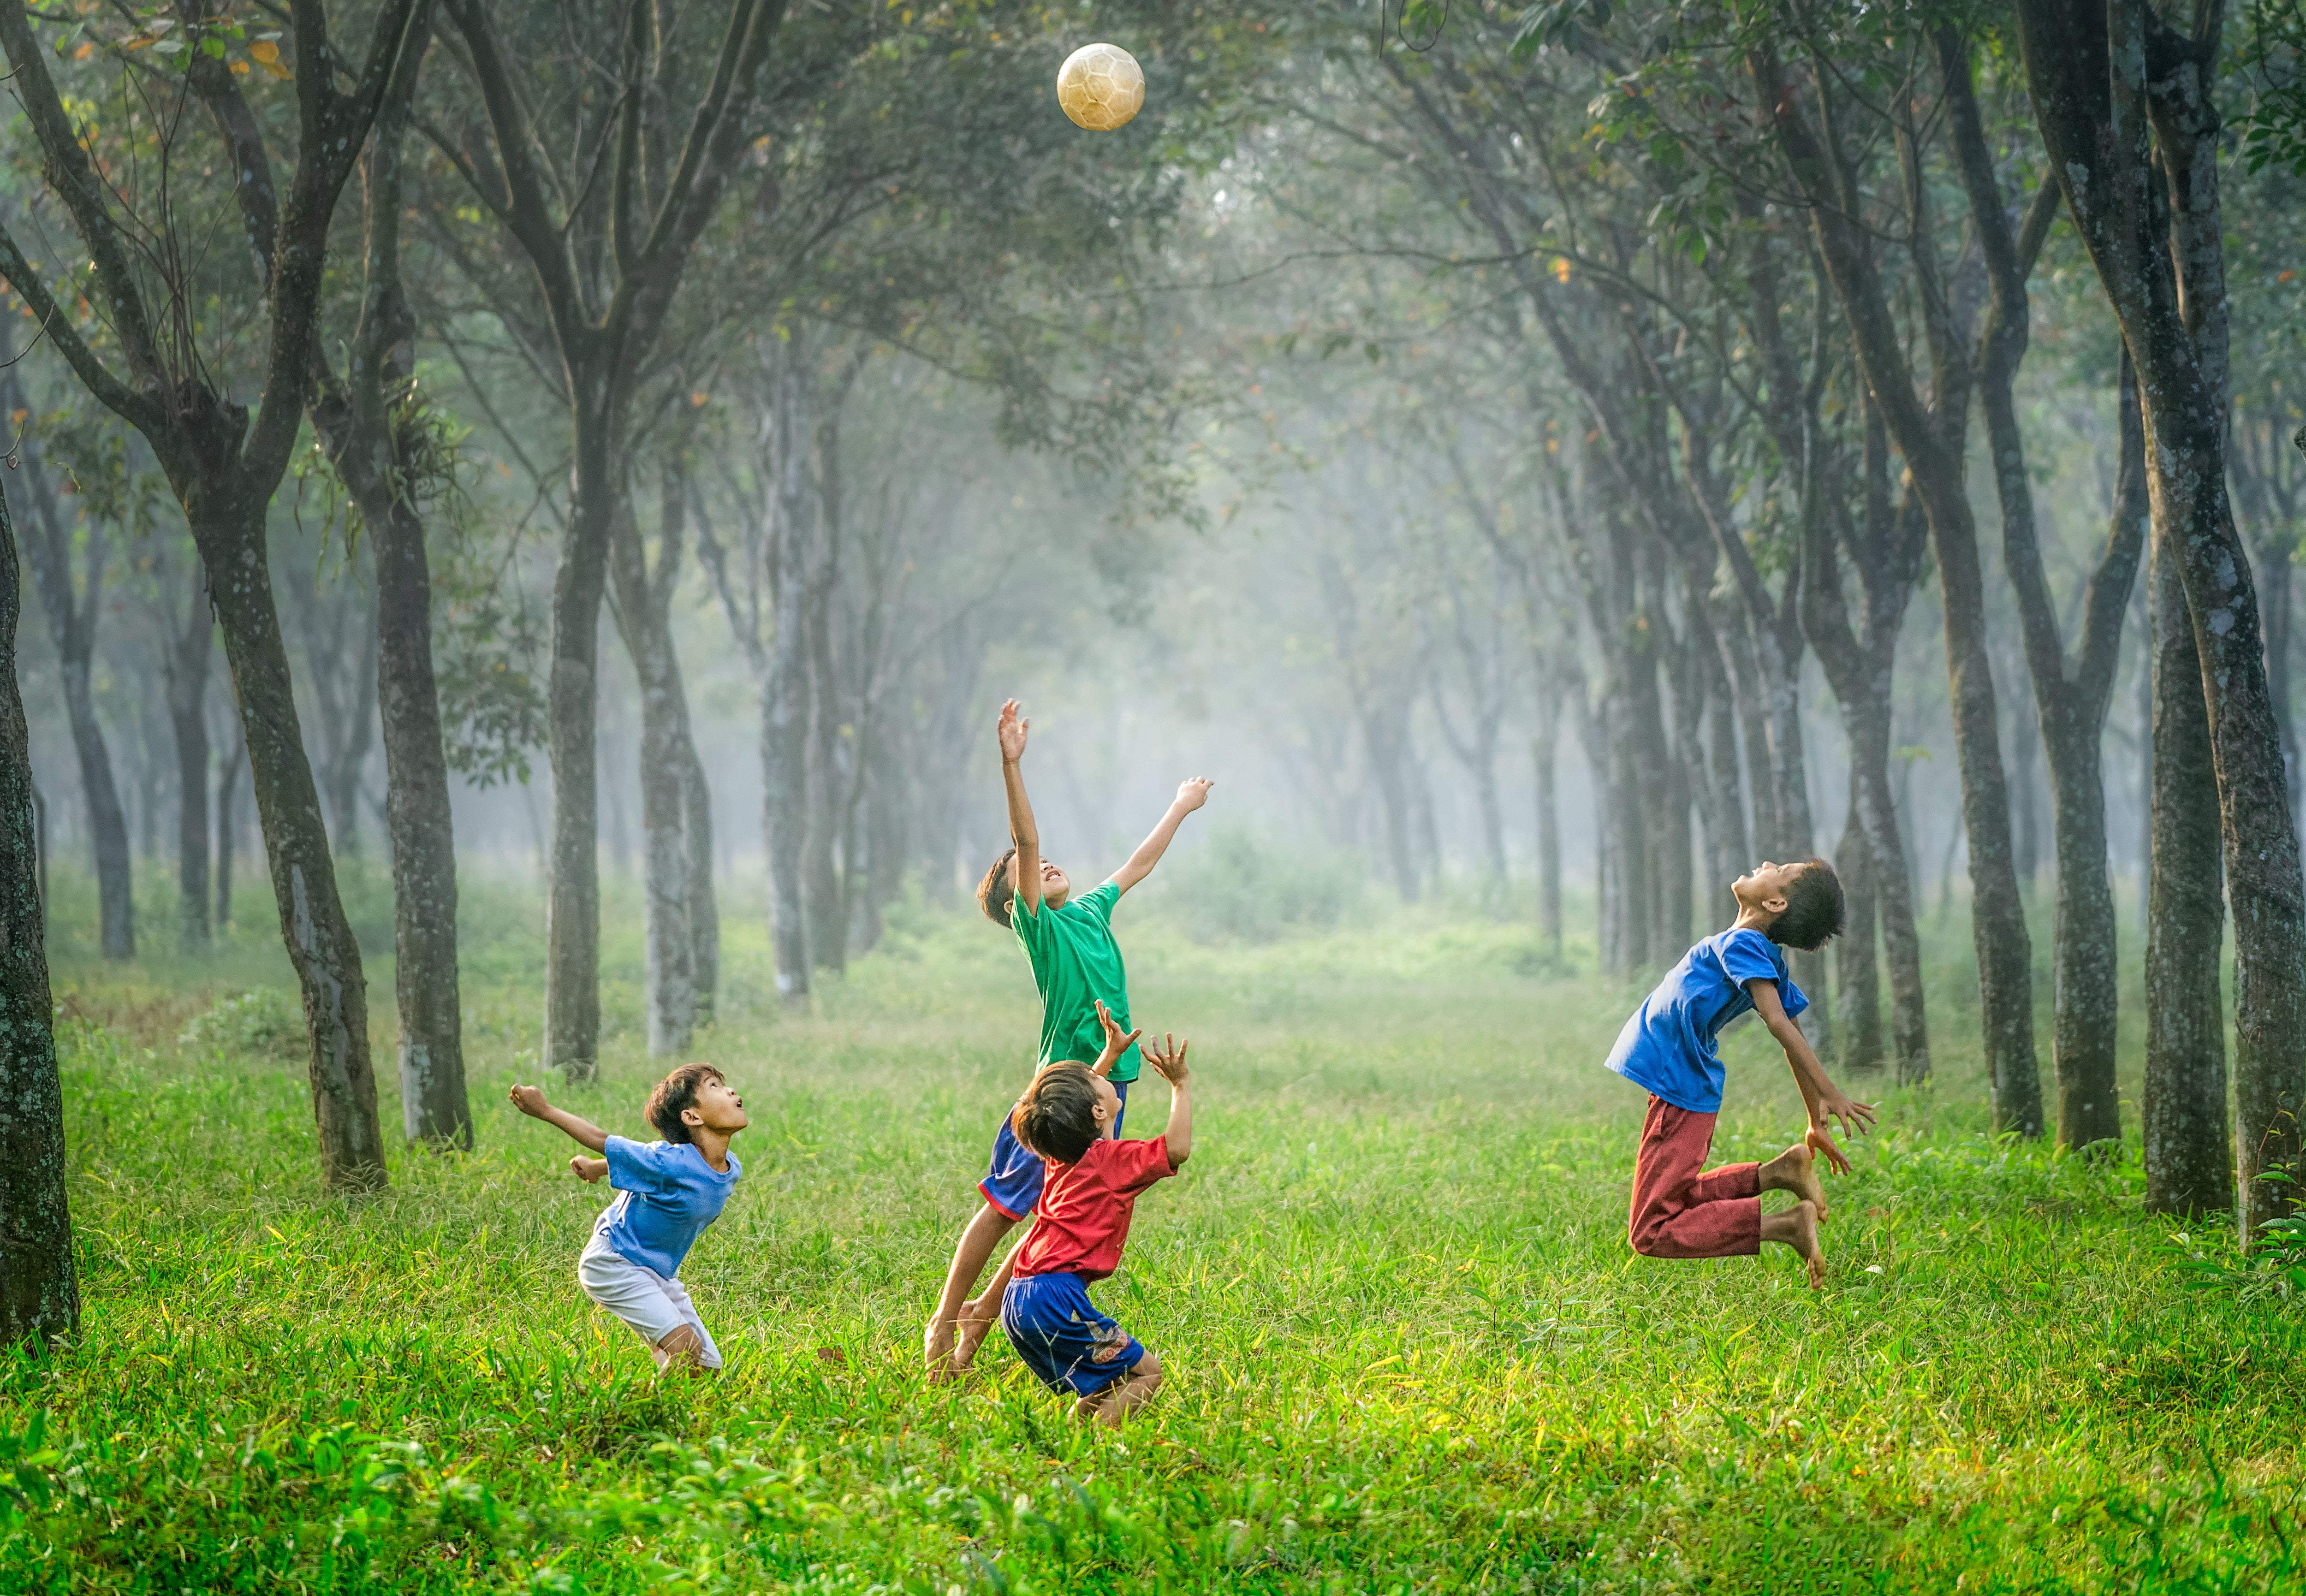 A vision for children in Indonesia